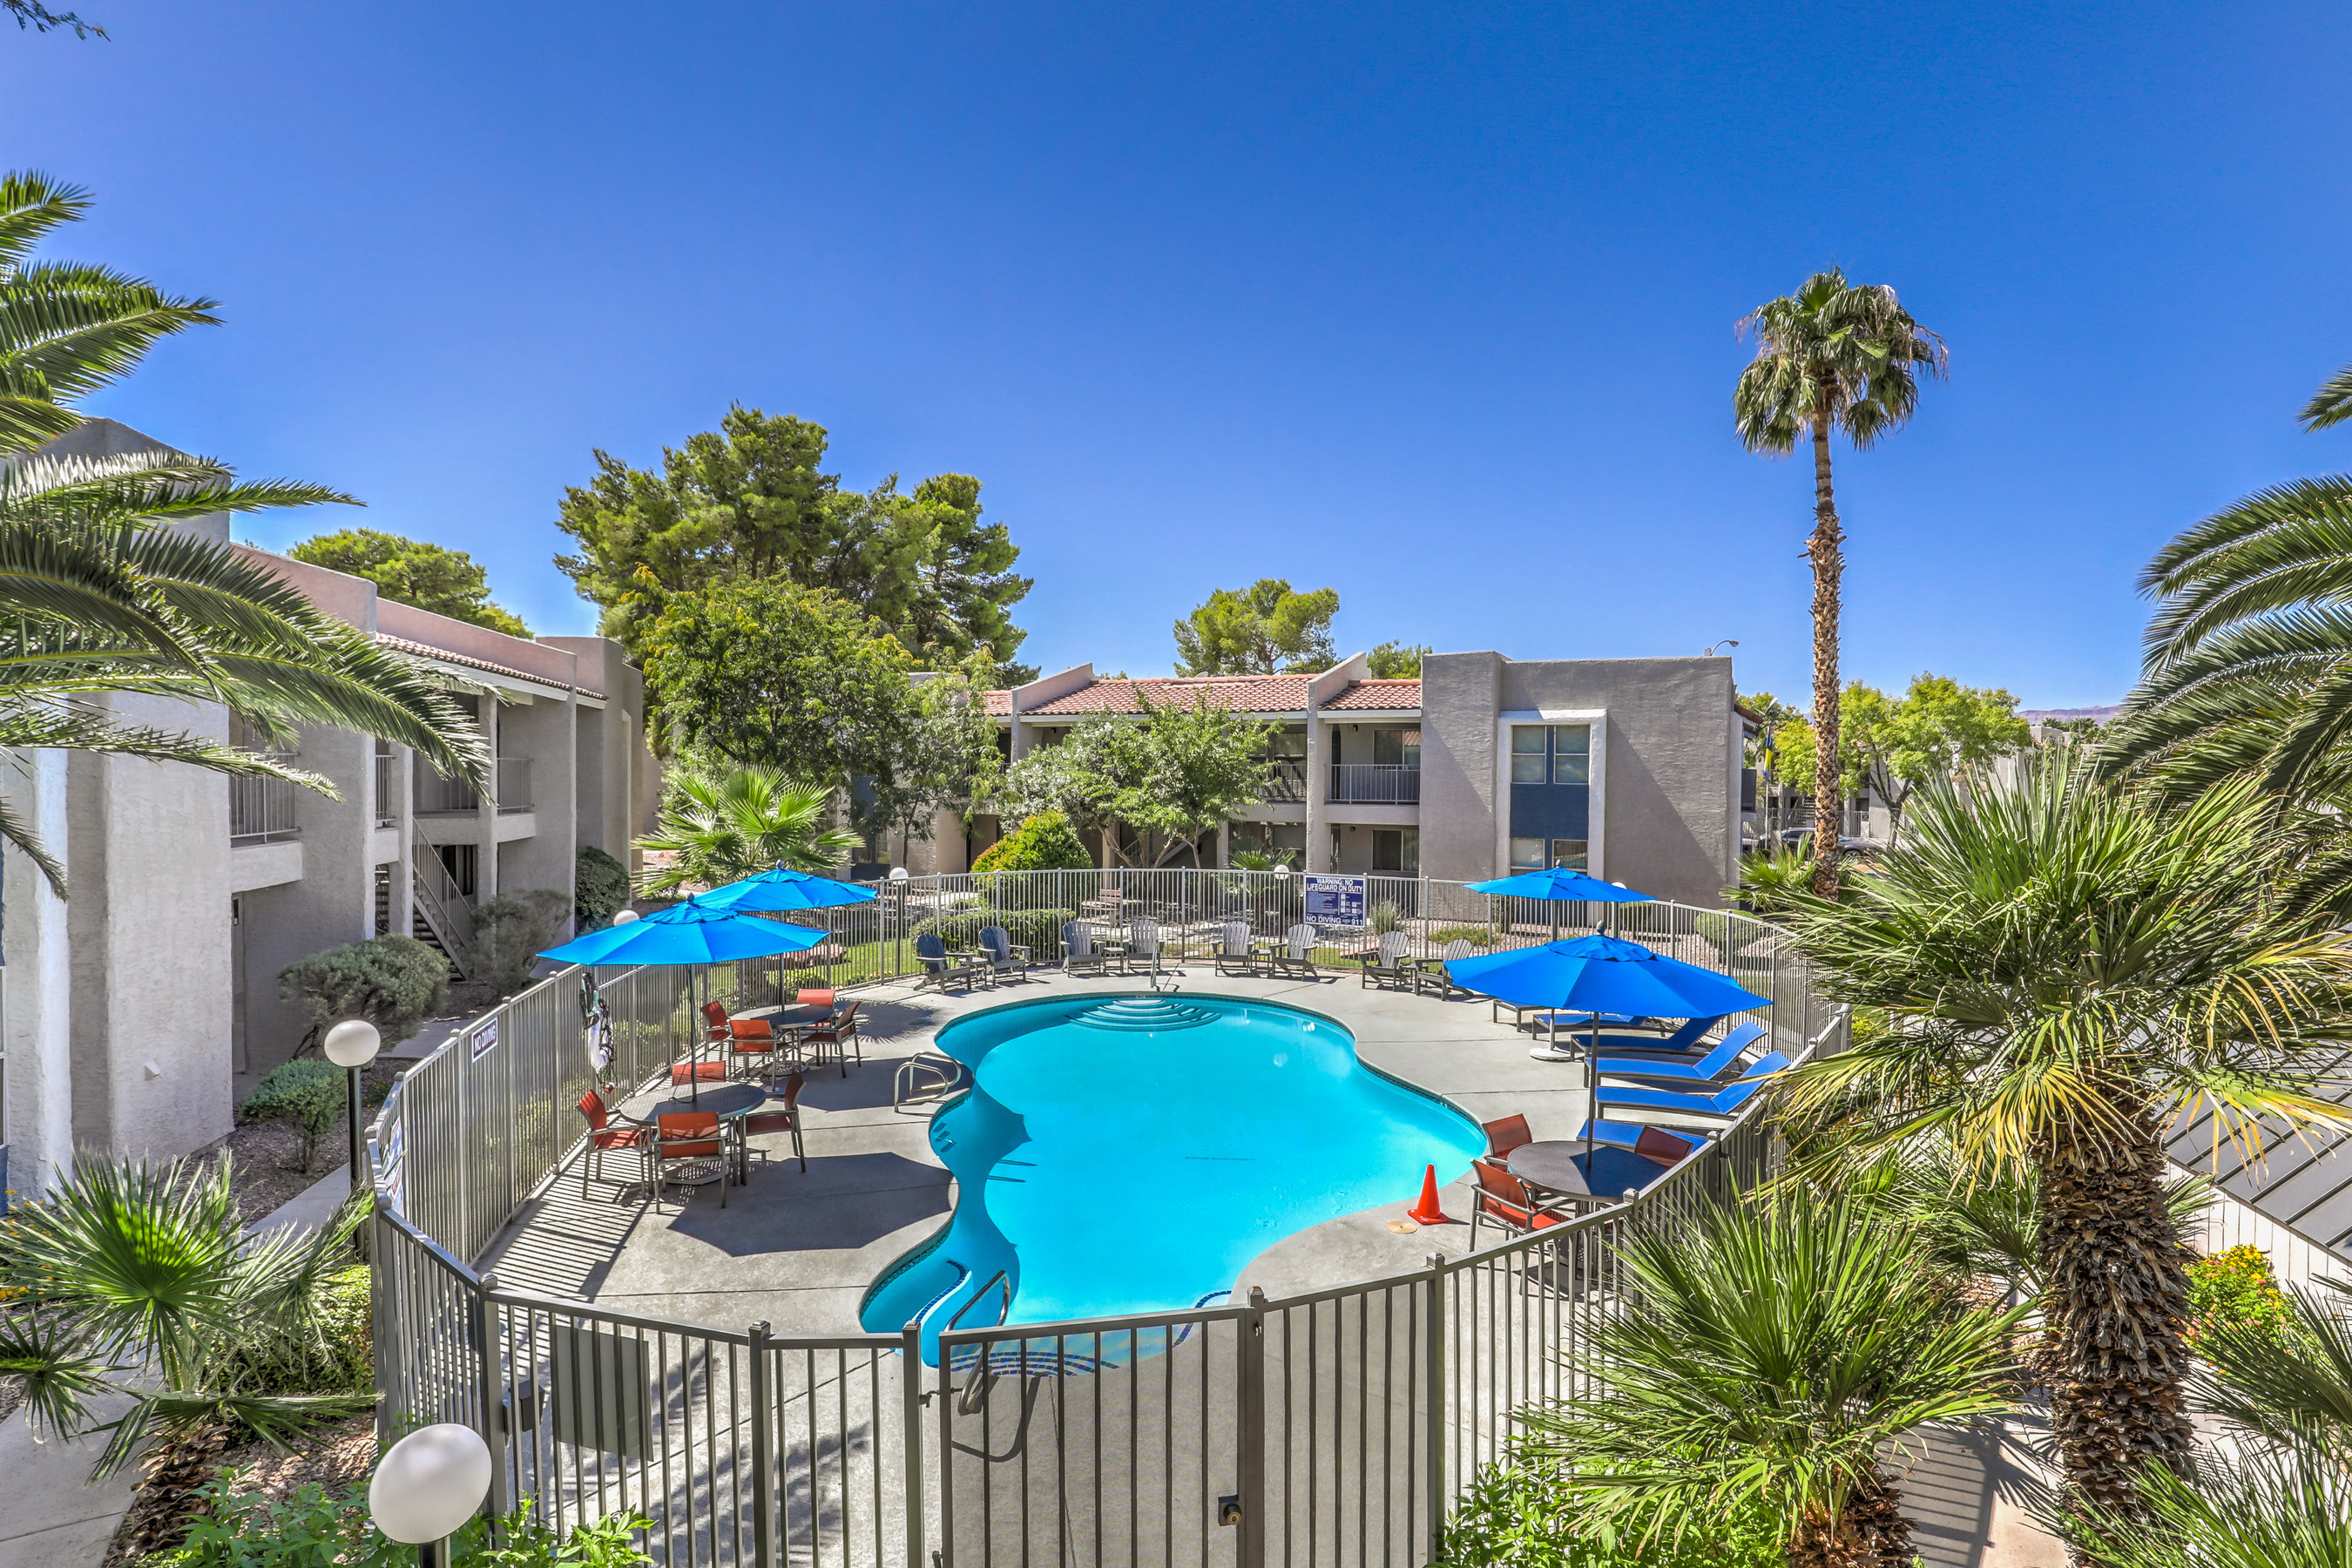 Tower 16 Capital Partners Sells 228-Unit Altura on Duneville Apartments for $35.5 Million in Las Vegas Market